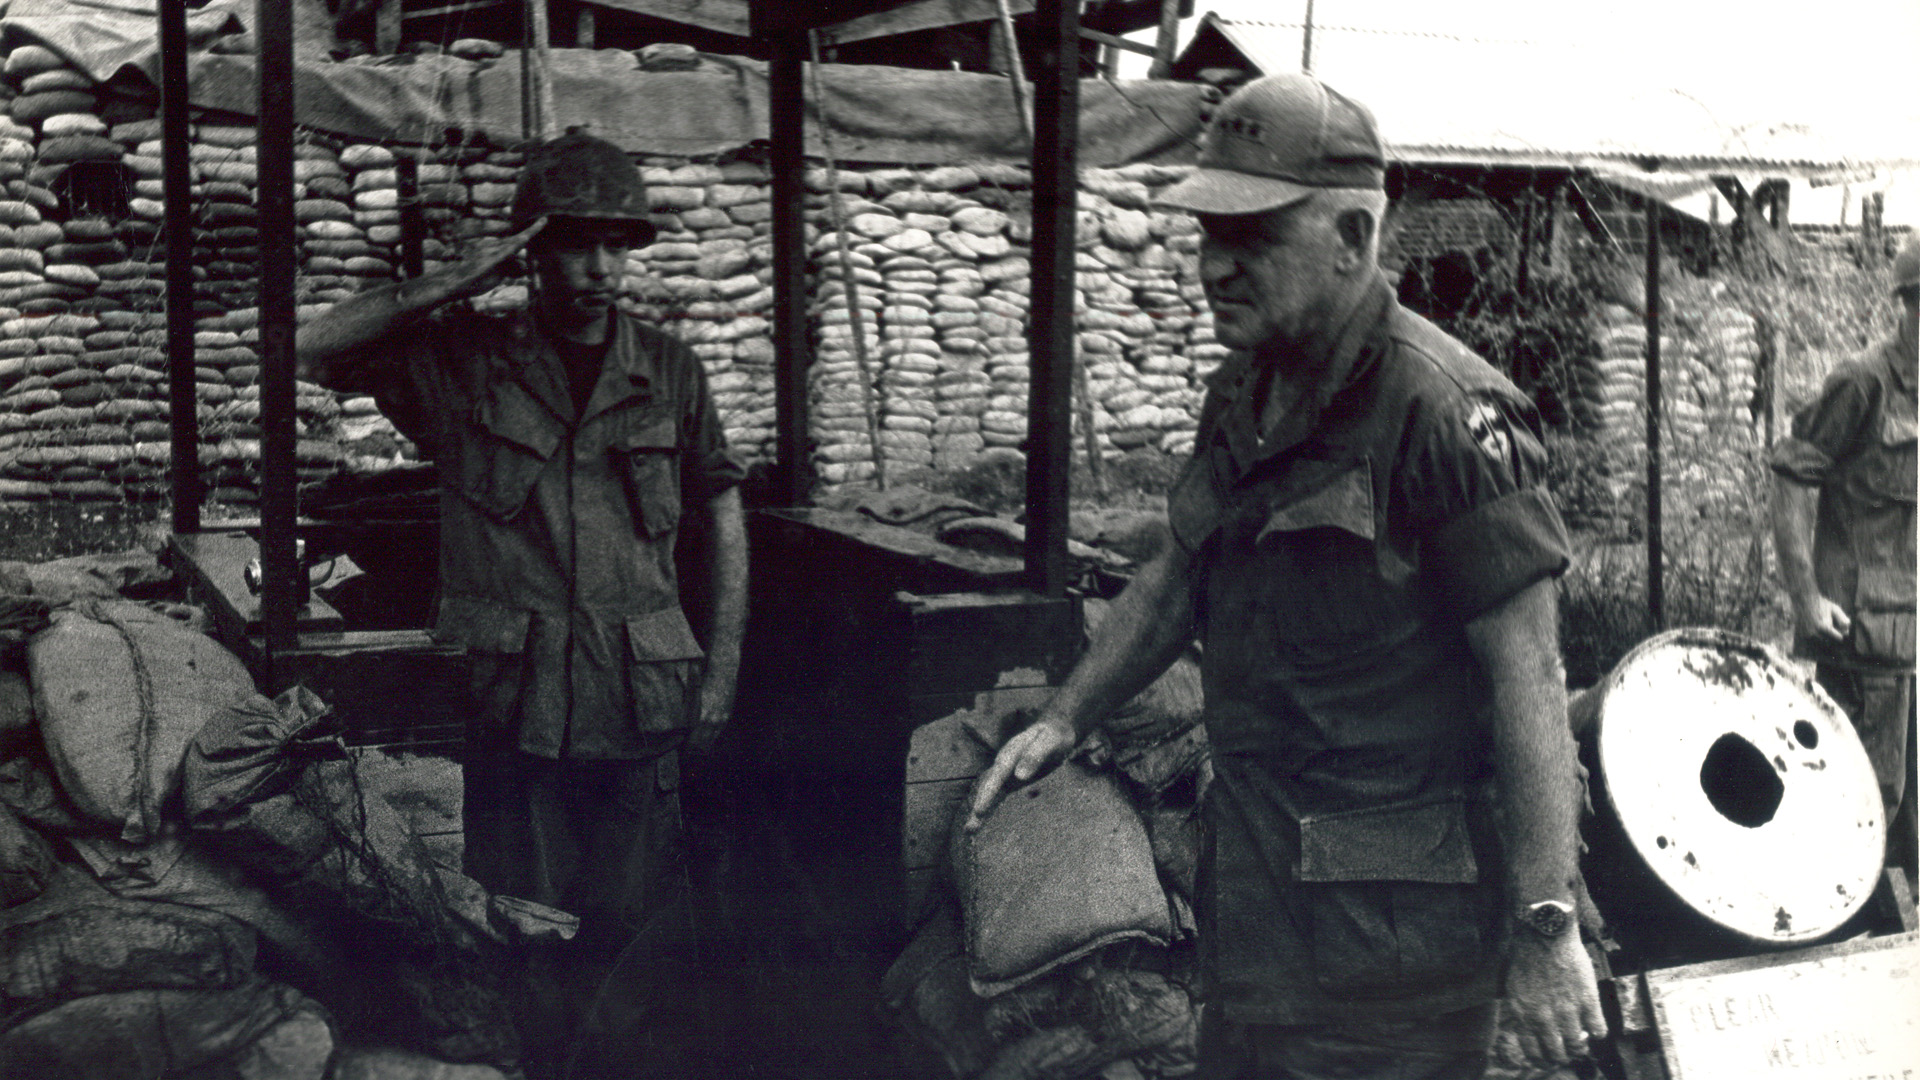 Sergeant Don Keller salutes General Abrahms during the siege of Dak To, 1969